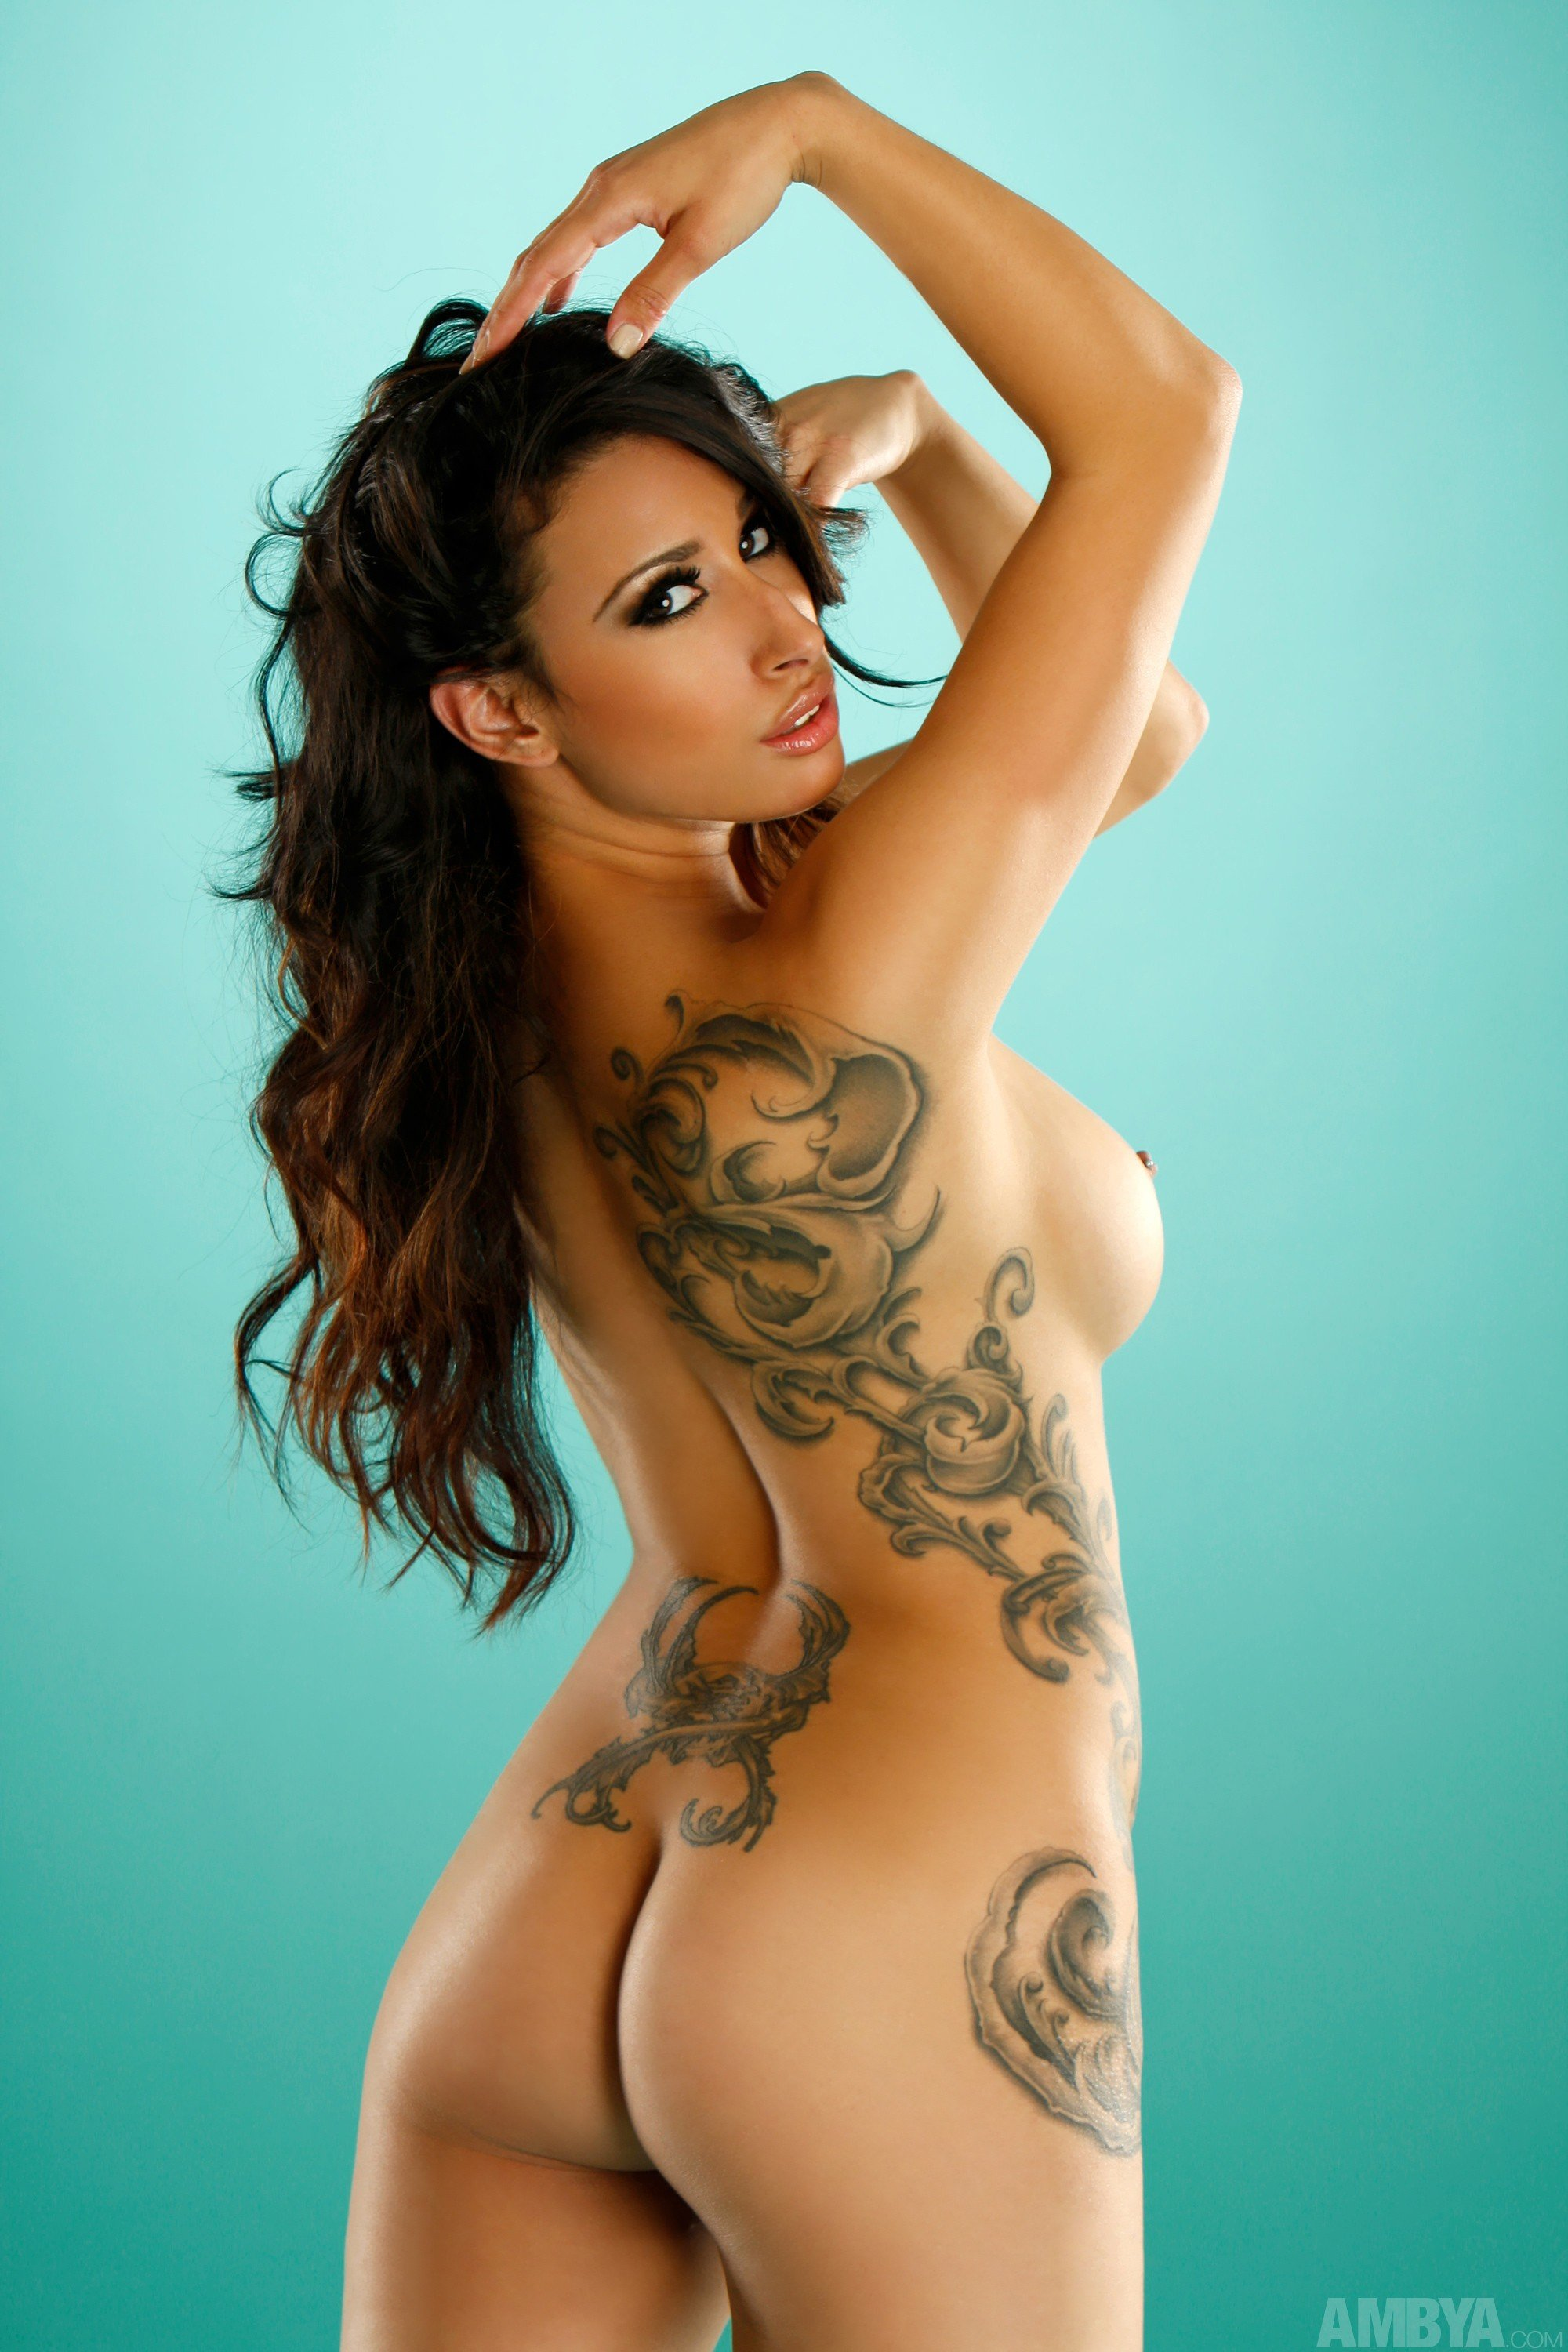 Tattoos and nude females #5